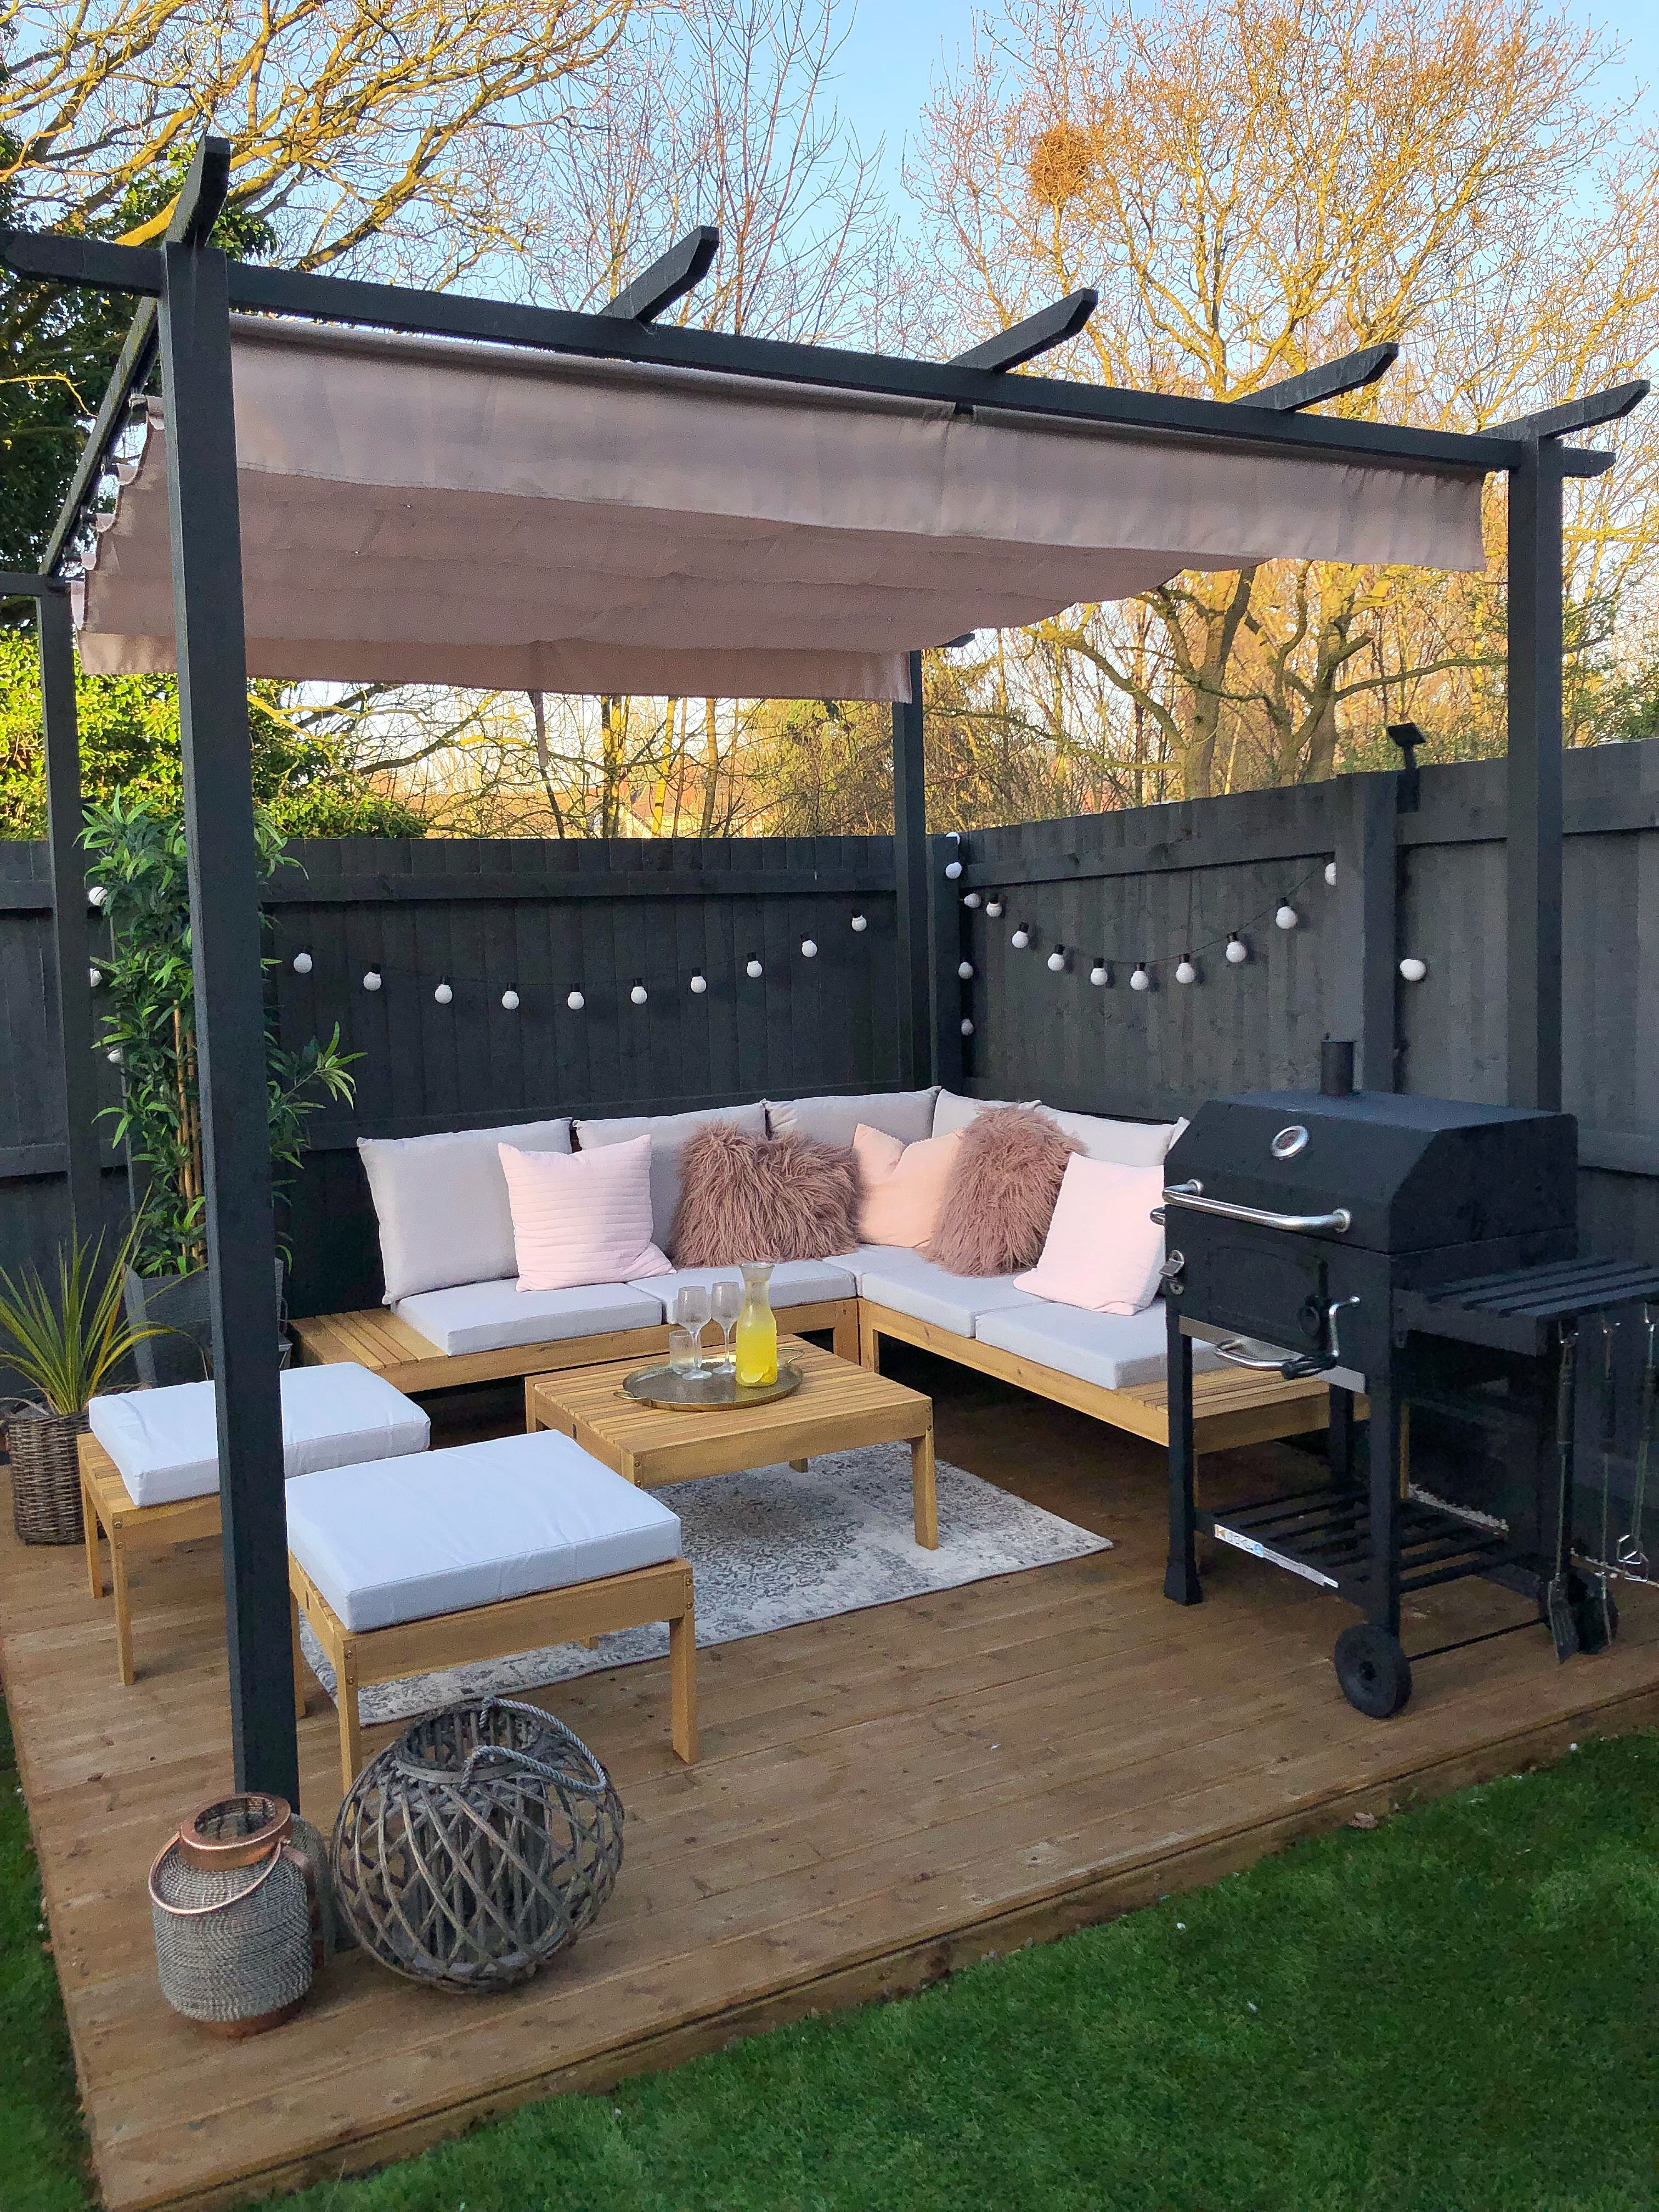 Decking with outdoor seating area corner sofa pergola and